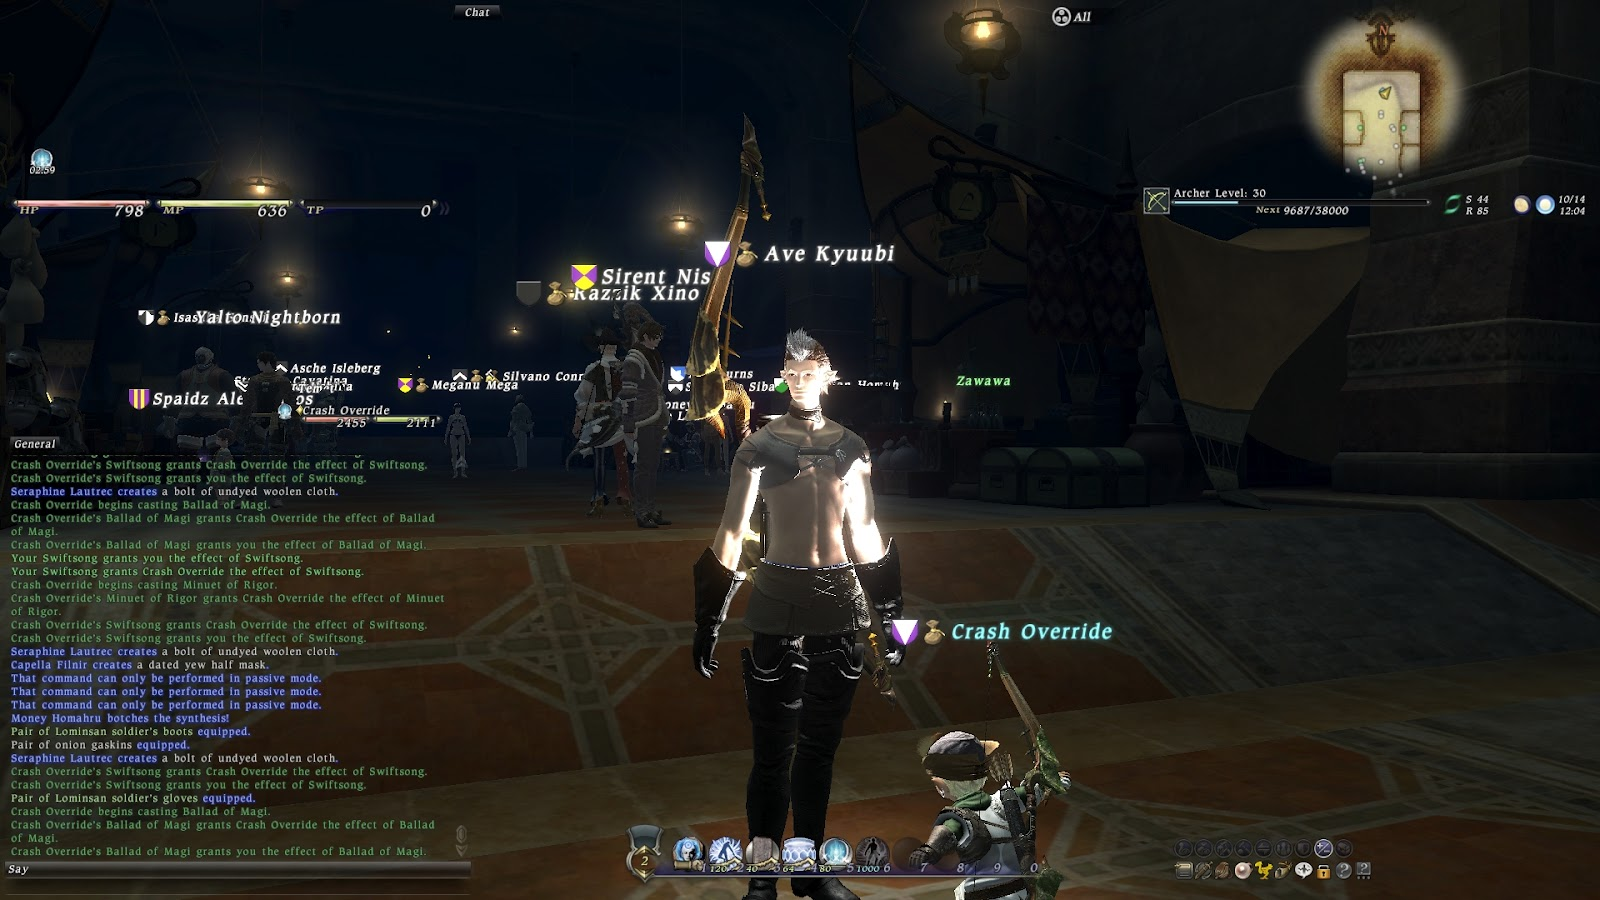 A FINAL FANTASY XIV BLOG: 2012